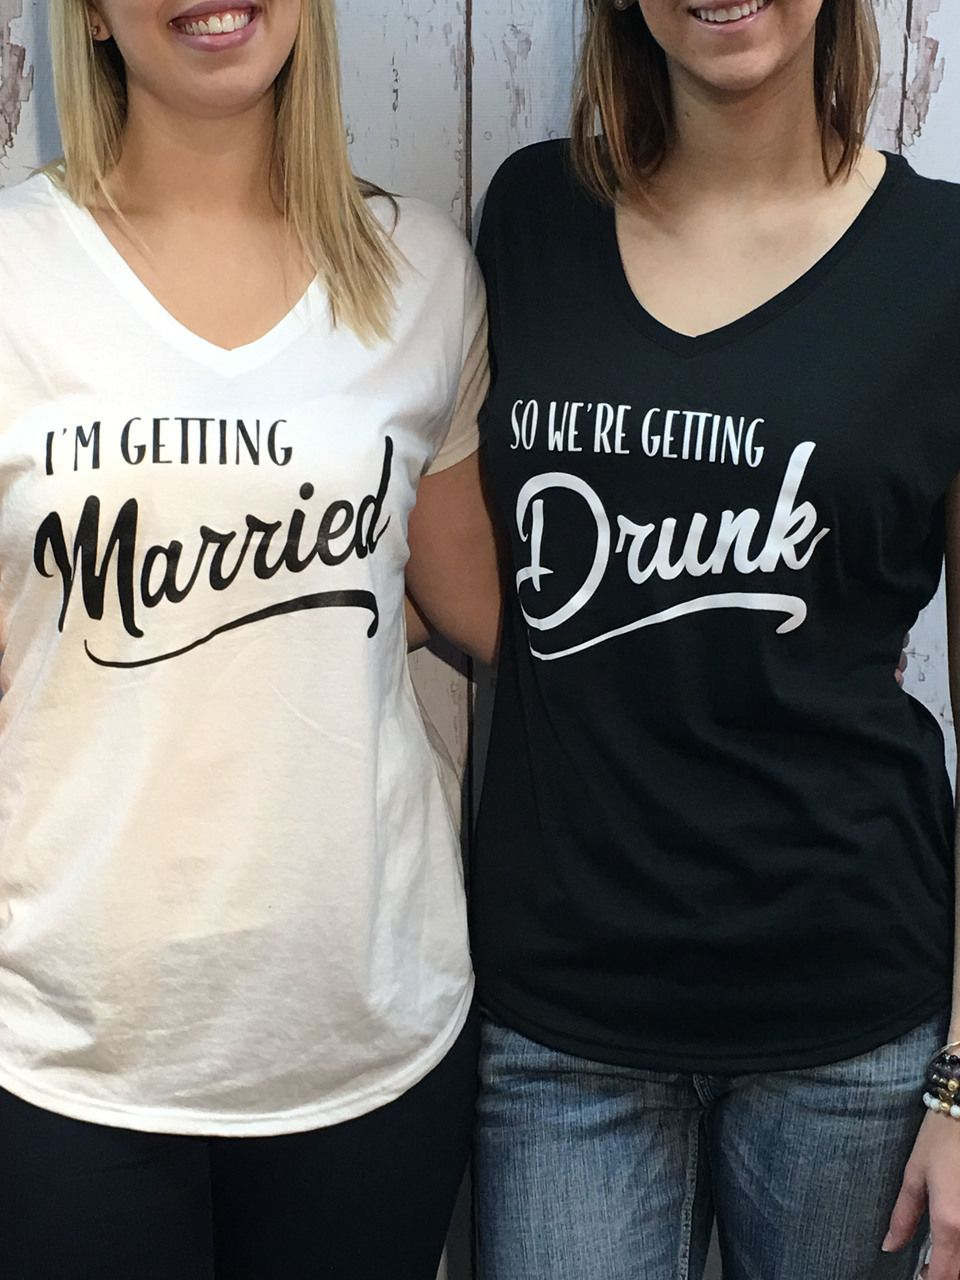 bcbdb9b6 I'm Getting Married - So We're Getting Drunk - Bulk Bridal Party Shirts -  Our most popular shirts are now available in v-neck. Great for you and your  crew ...